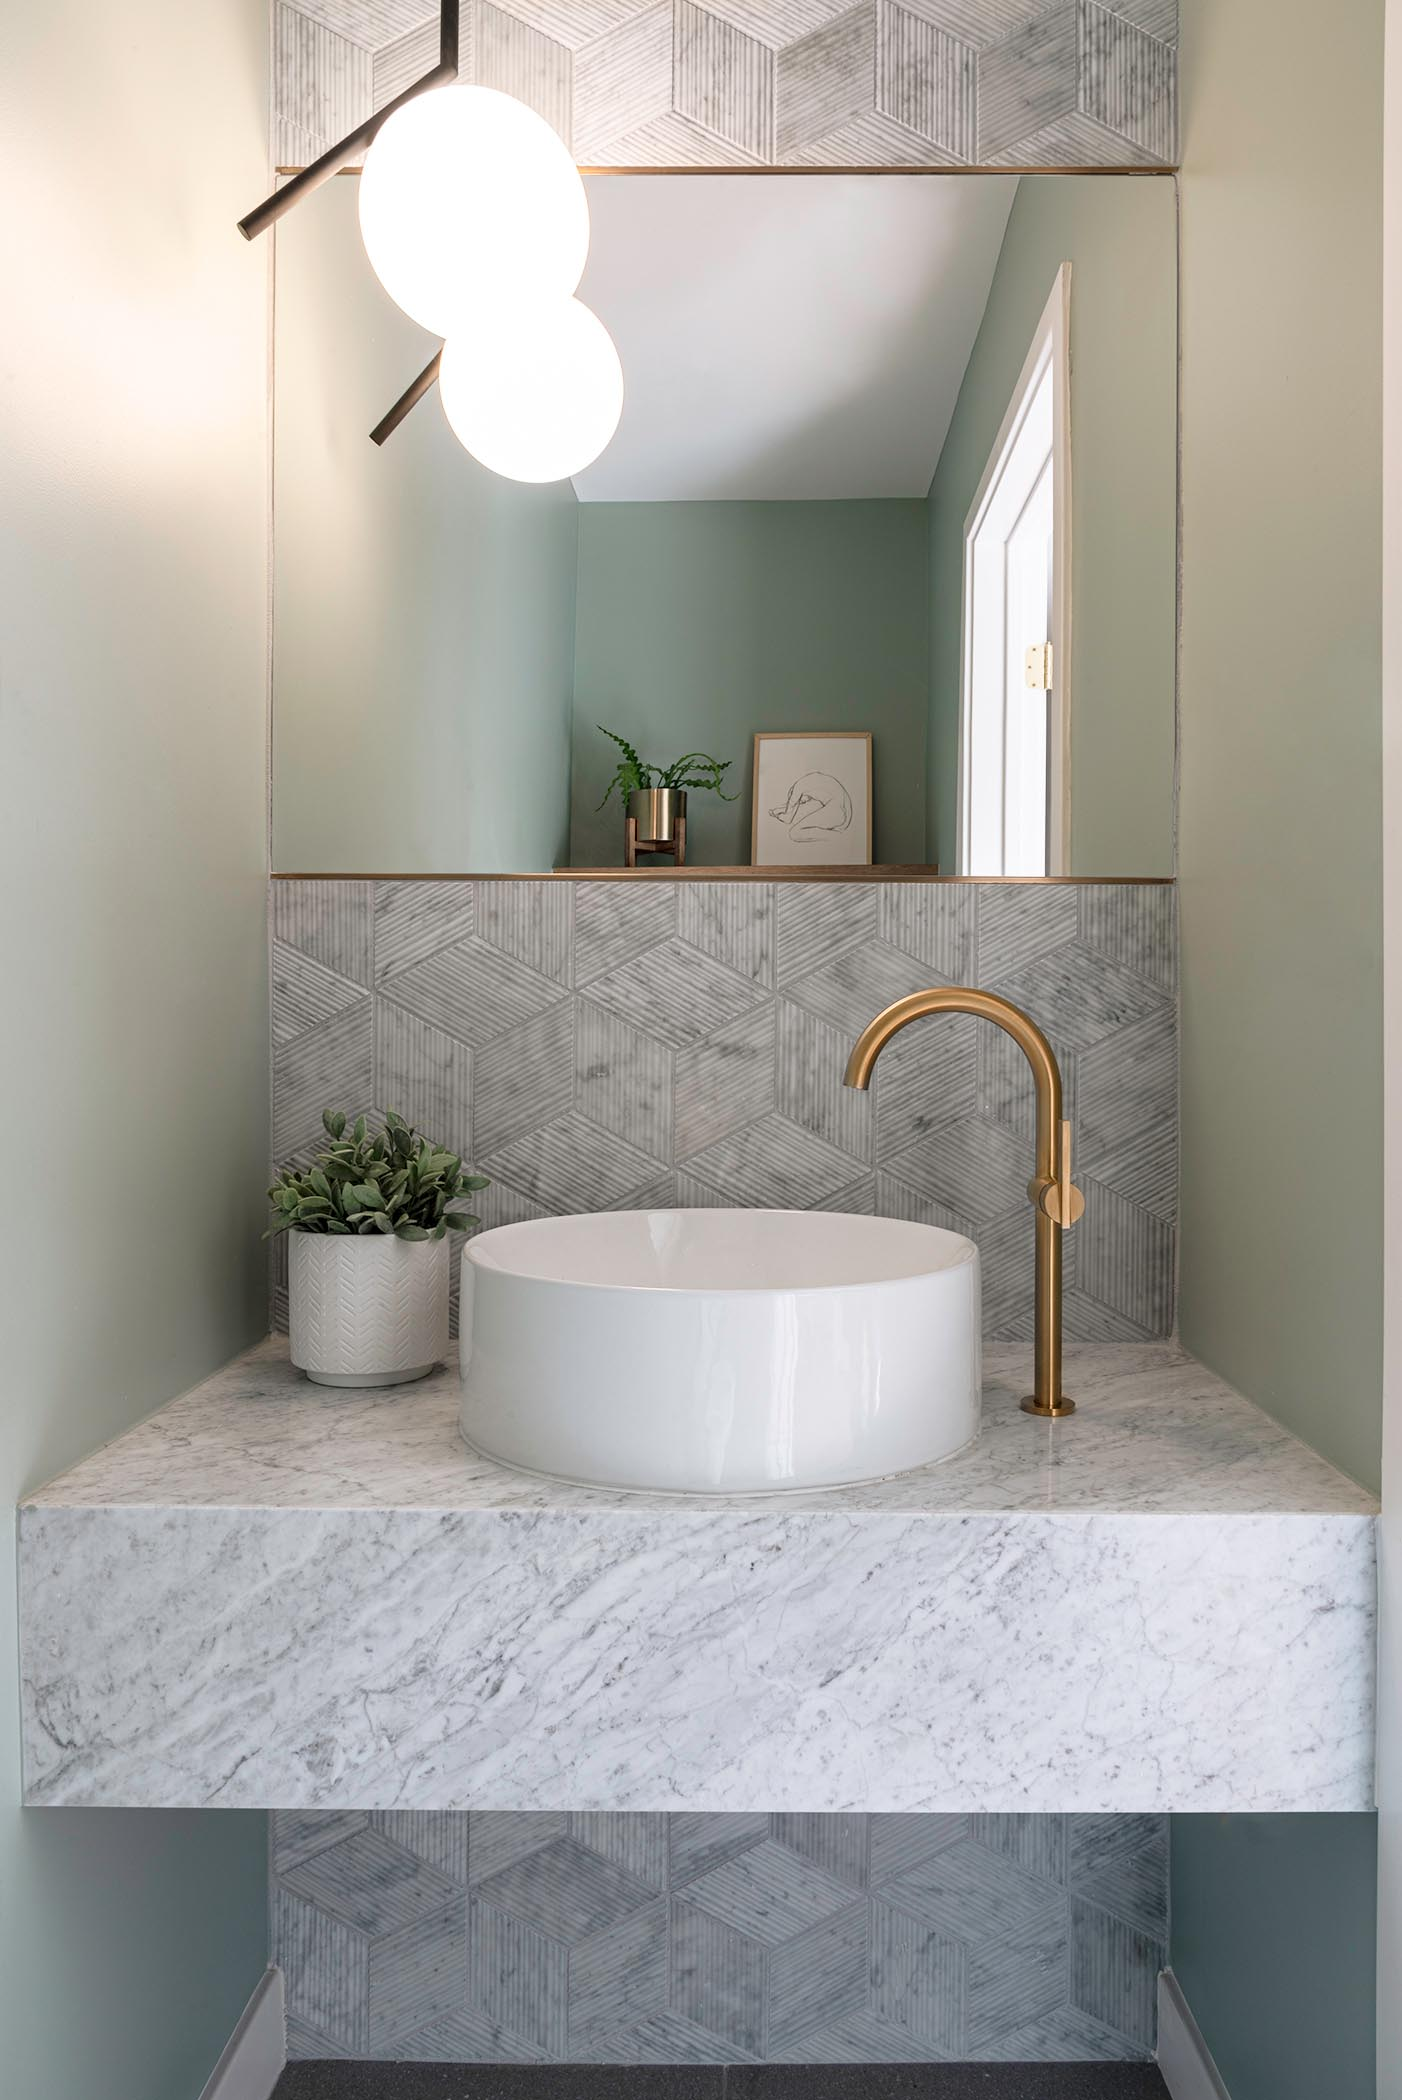 A powder room that showcases Salvatori Romboo tile with a textural bamboo-like finish, while a floating vanity is topped with a round white vessel sink from KOHLER and bronze accents from Newport Brass.